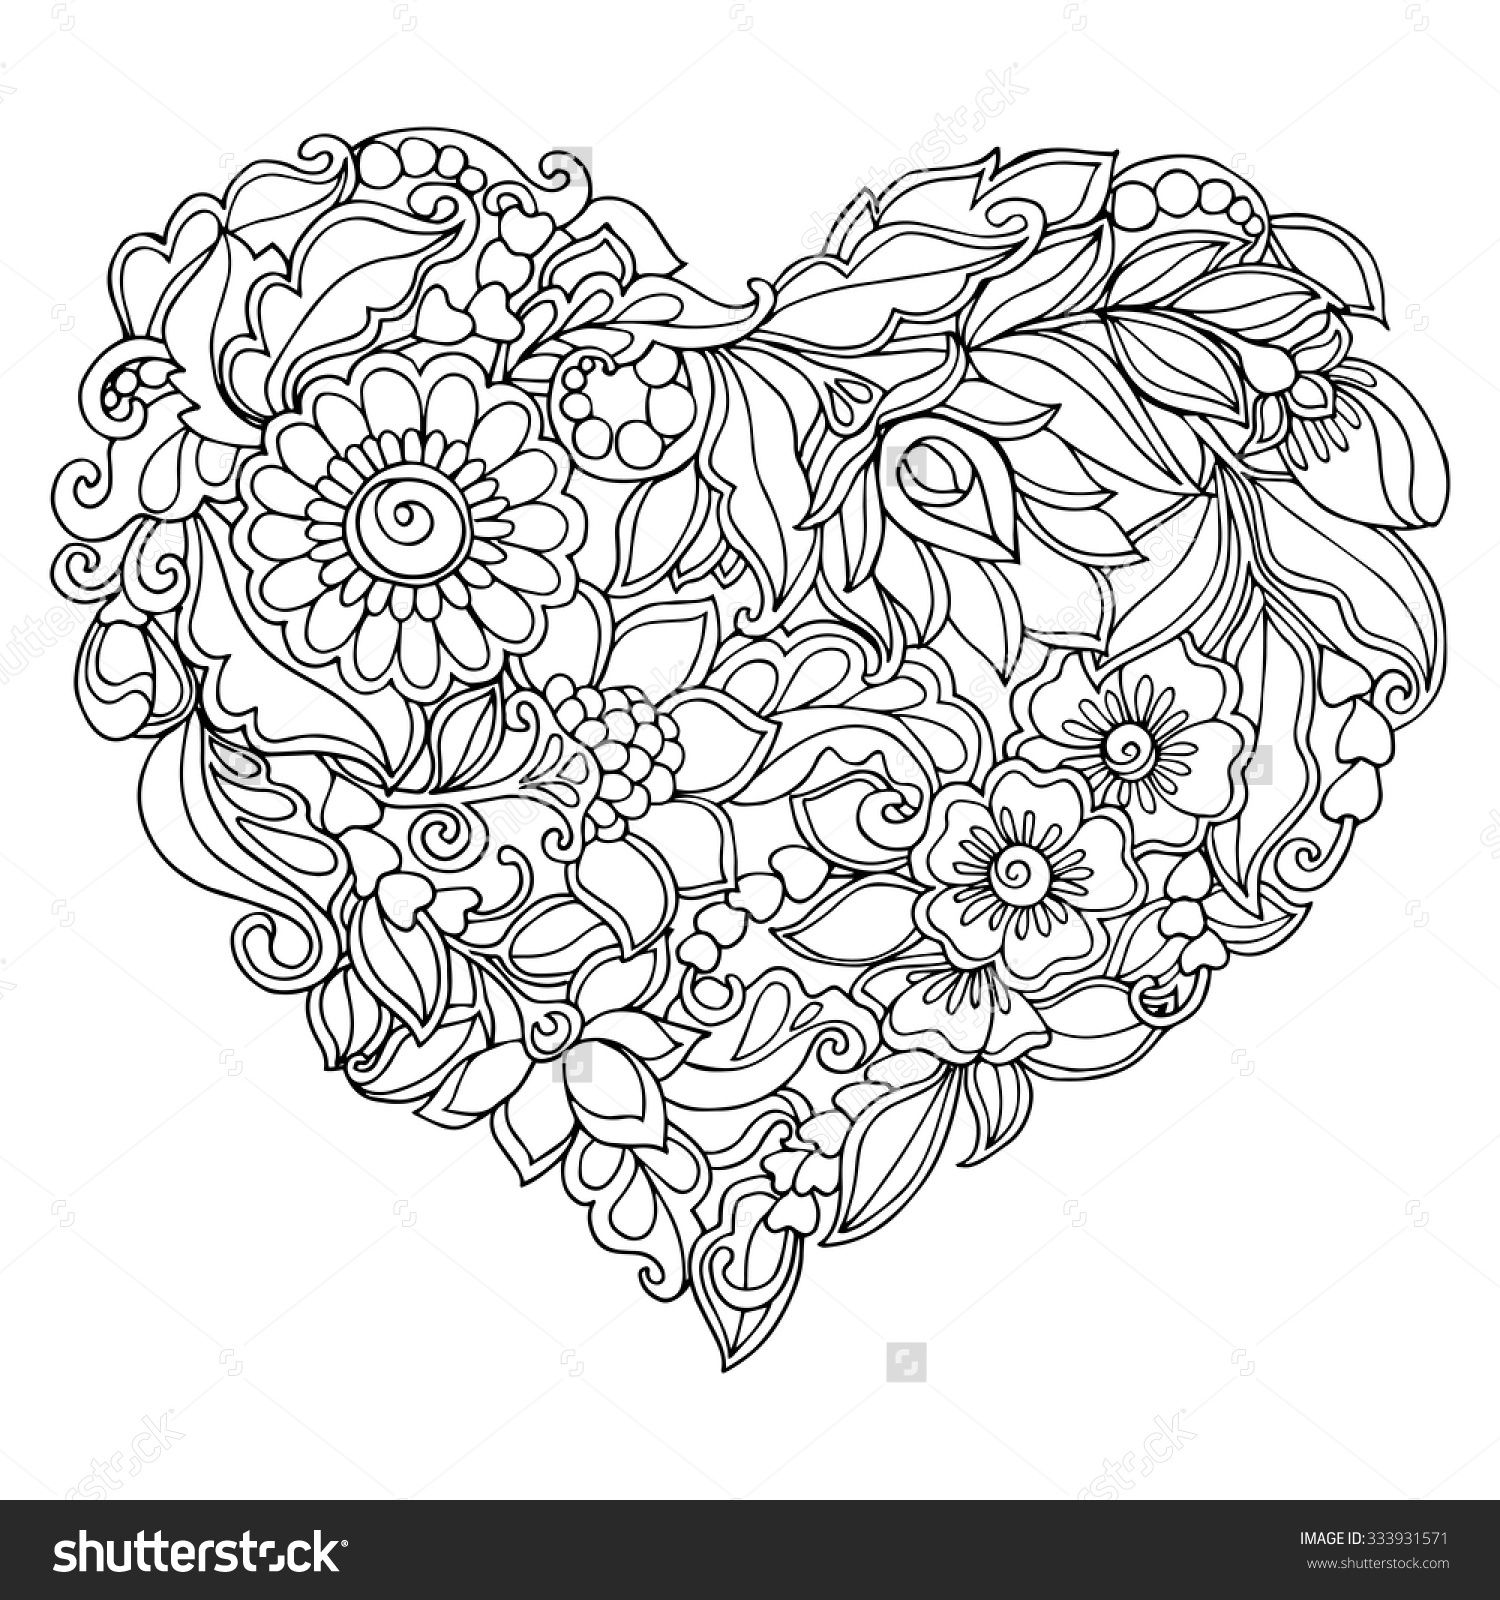 Stock Vector Coloring Book For Adult And Older Children Page With Vintage Flowers Pattern 333931589 1500x1600